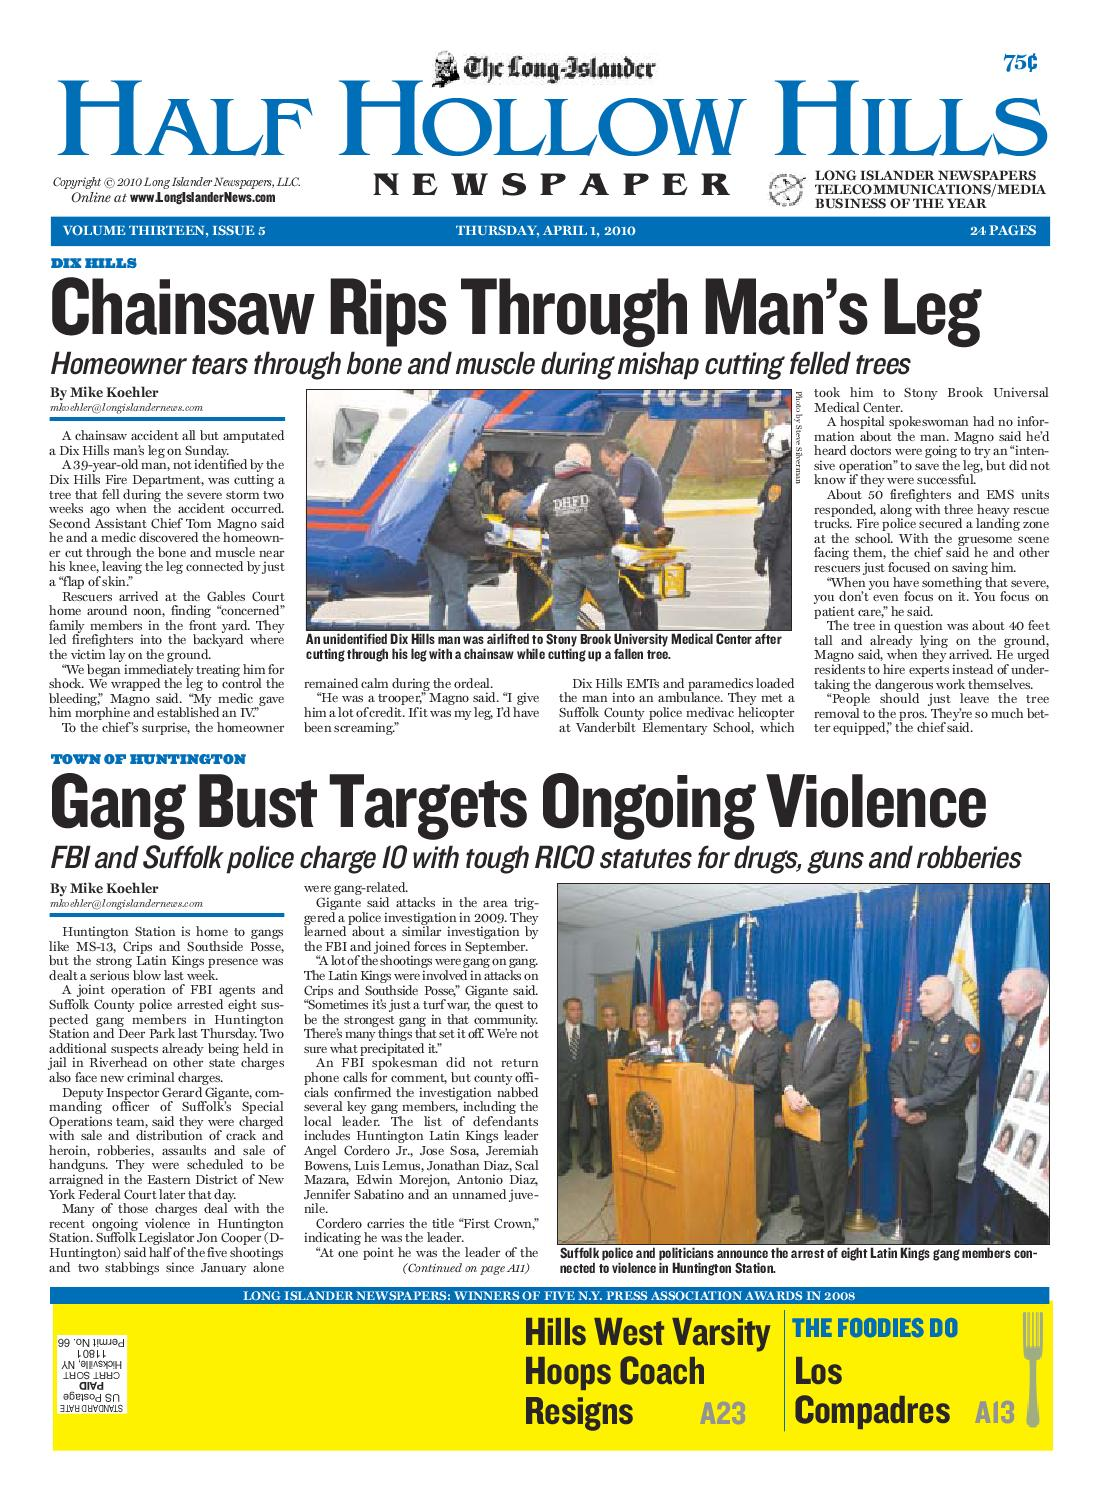 the half hollow hills newspaper by long islander newspapers issuu